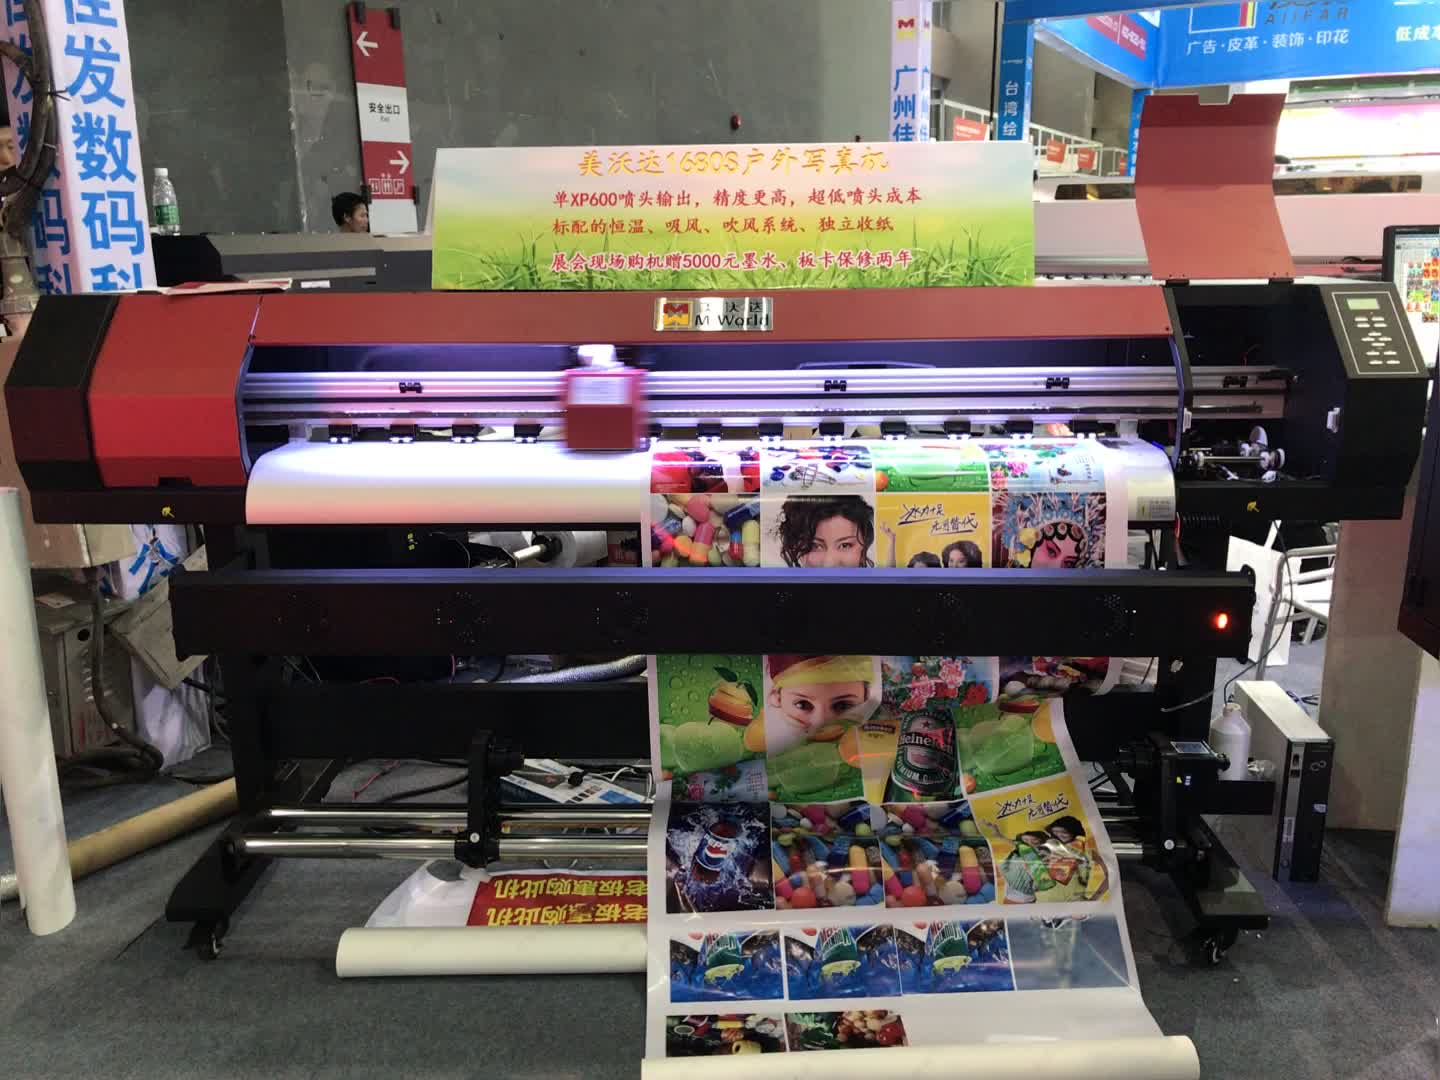 Factory Promotion Commercial Advertising Inkjet Printer 1 68m 1 8m Cmyk  Digital Photo Color Printing Machine Price - Buy Digital Photo Printing